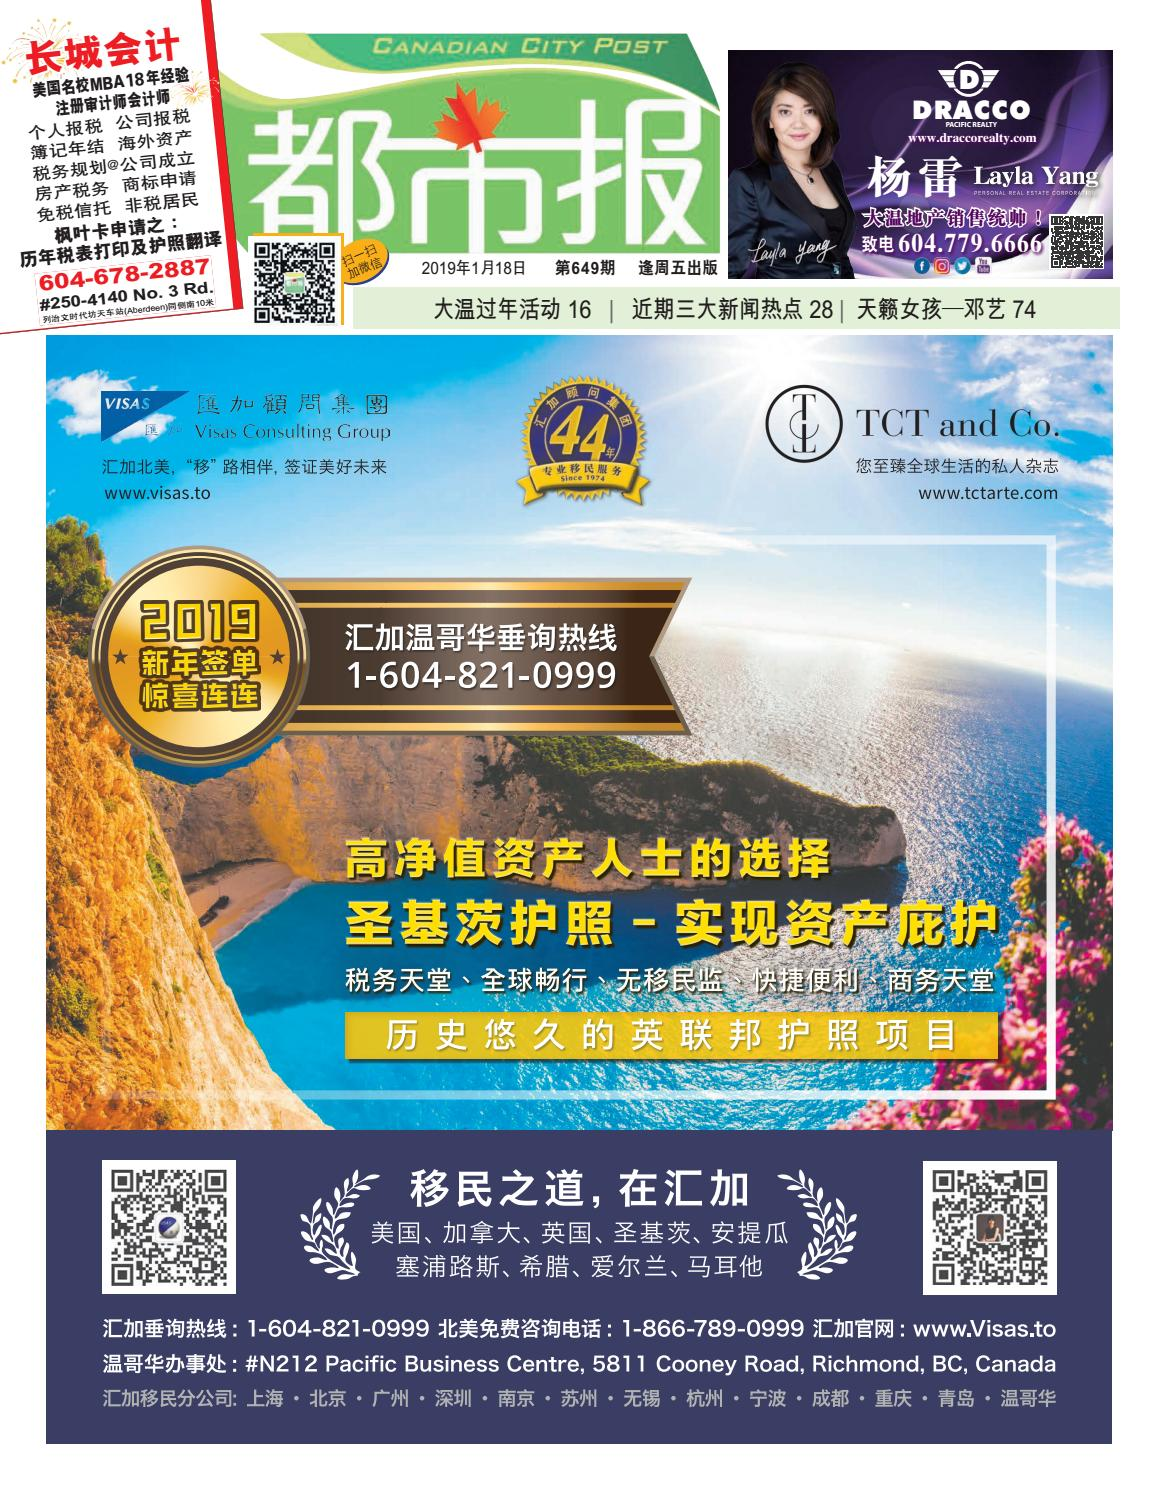 Sing Tao Canadian City Post 20190118 By Sing Tao Vancouver 星島